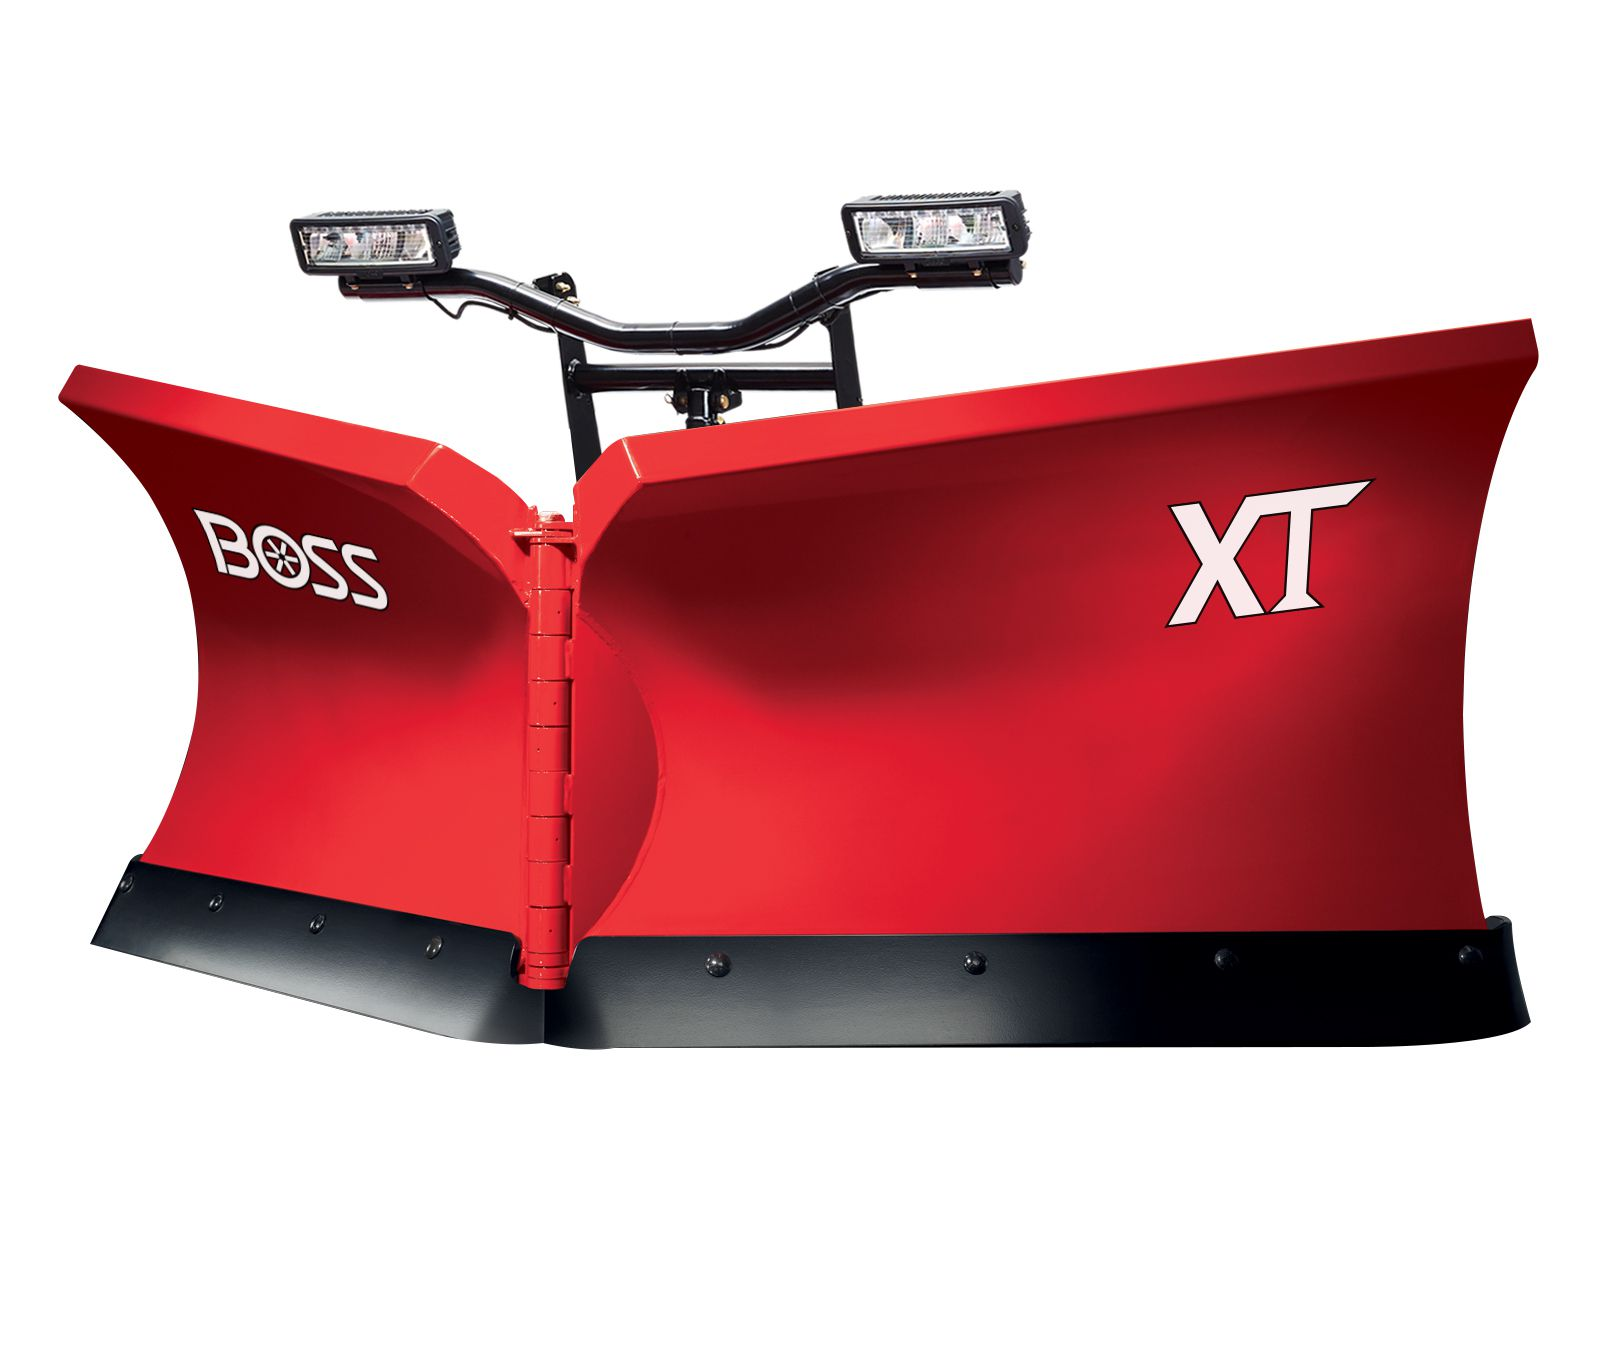 BOSS Power-V XT Polyethylene Plow